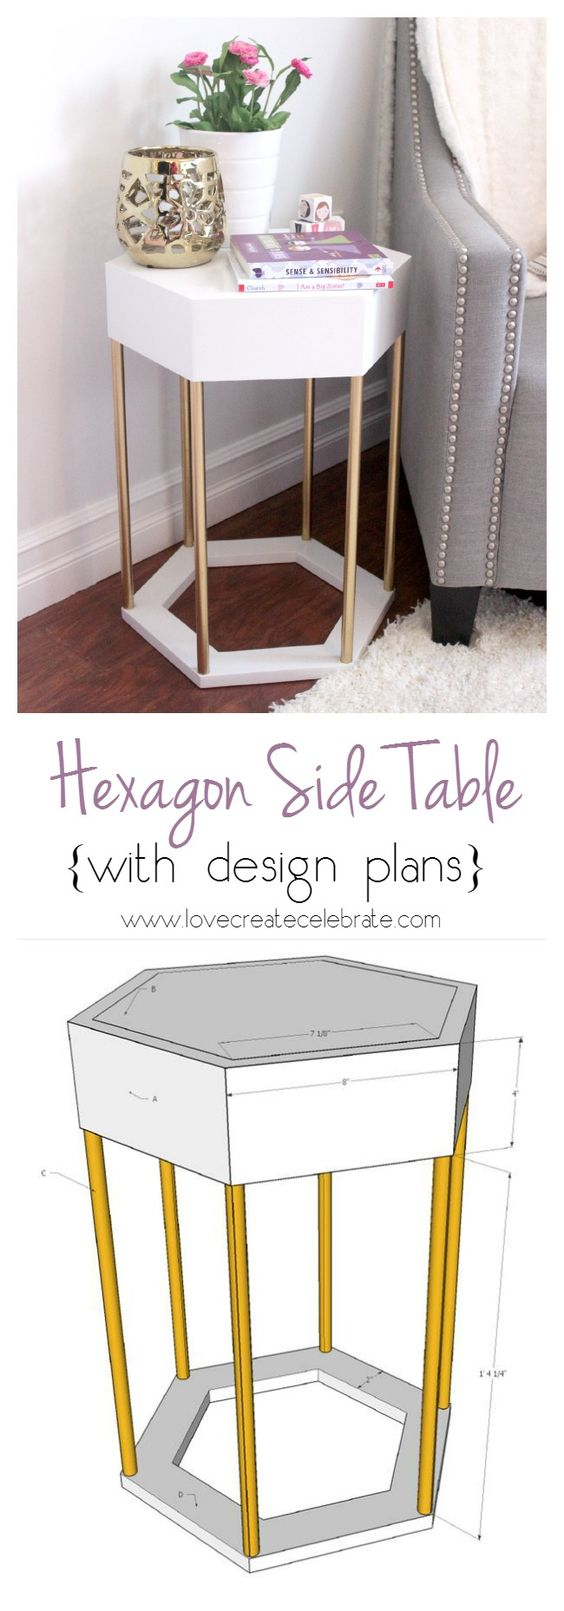 Modern Hexagon Side Table.